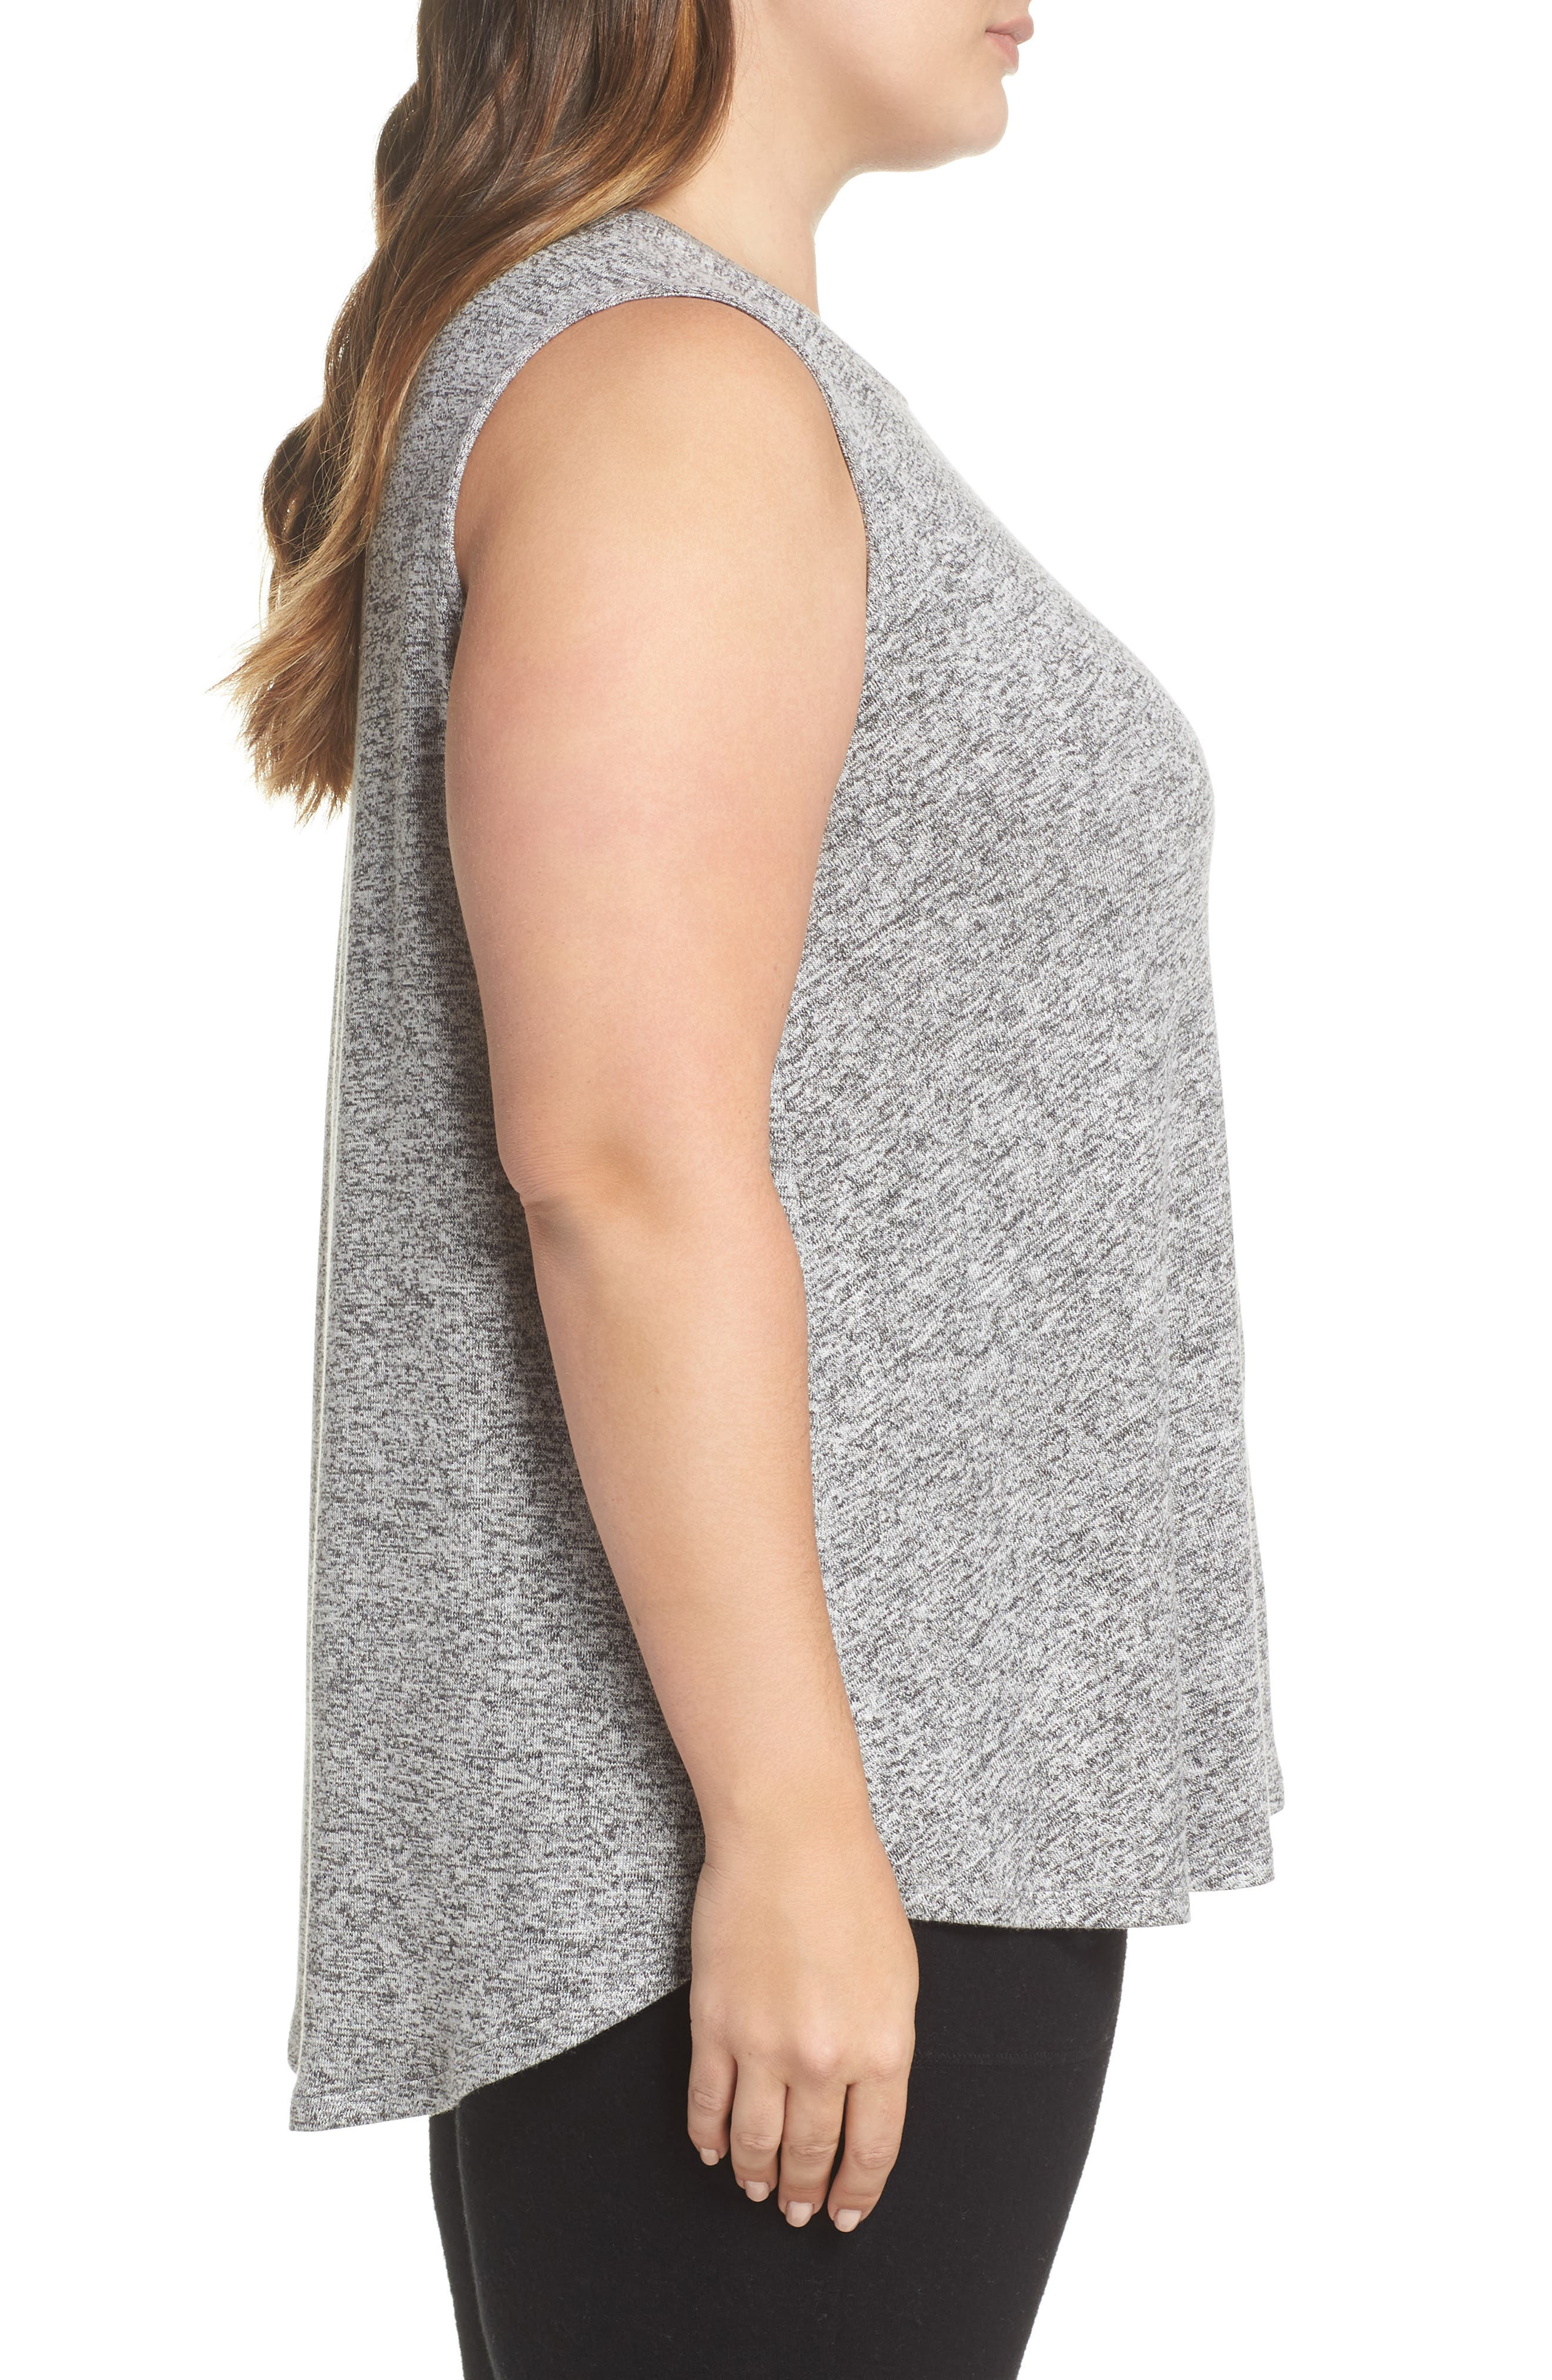 x Living in Yellow Millie Muscle Tank,                             Alternate thumbnail 4, color,                             Heather Grey Marled